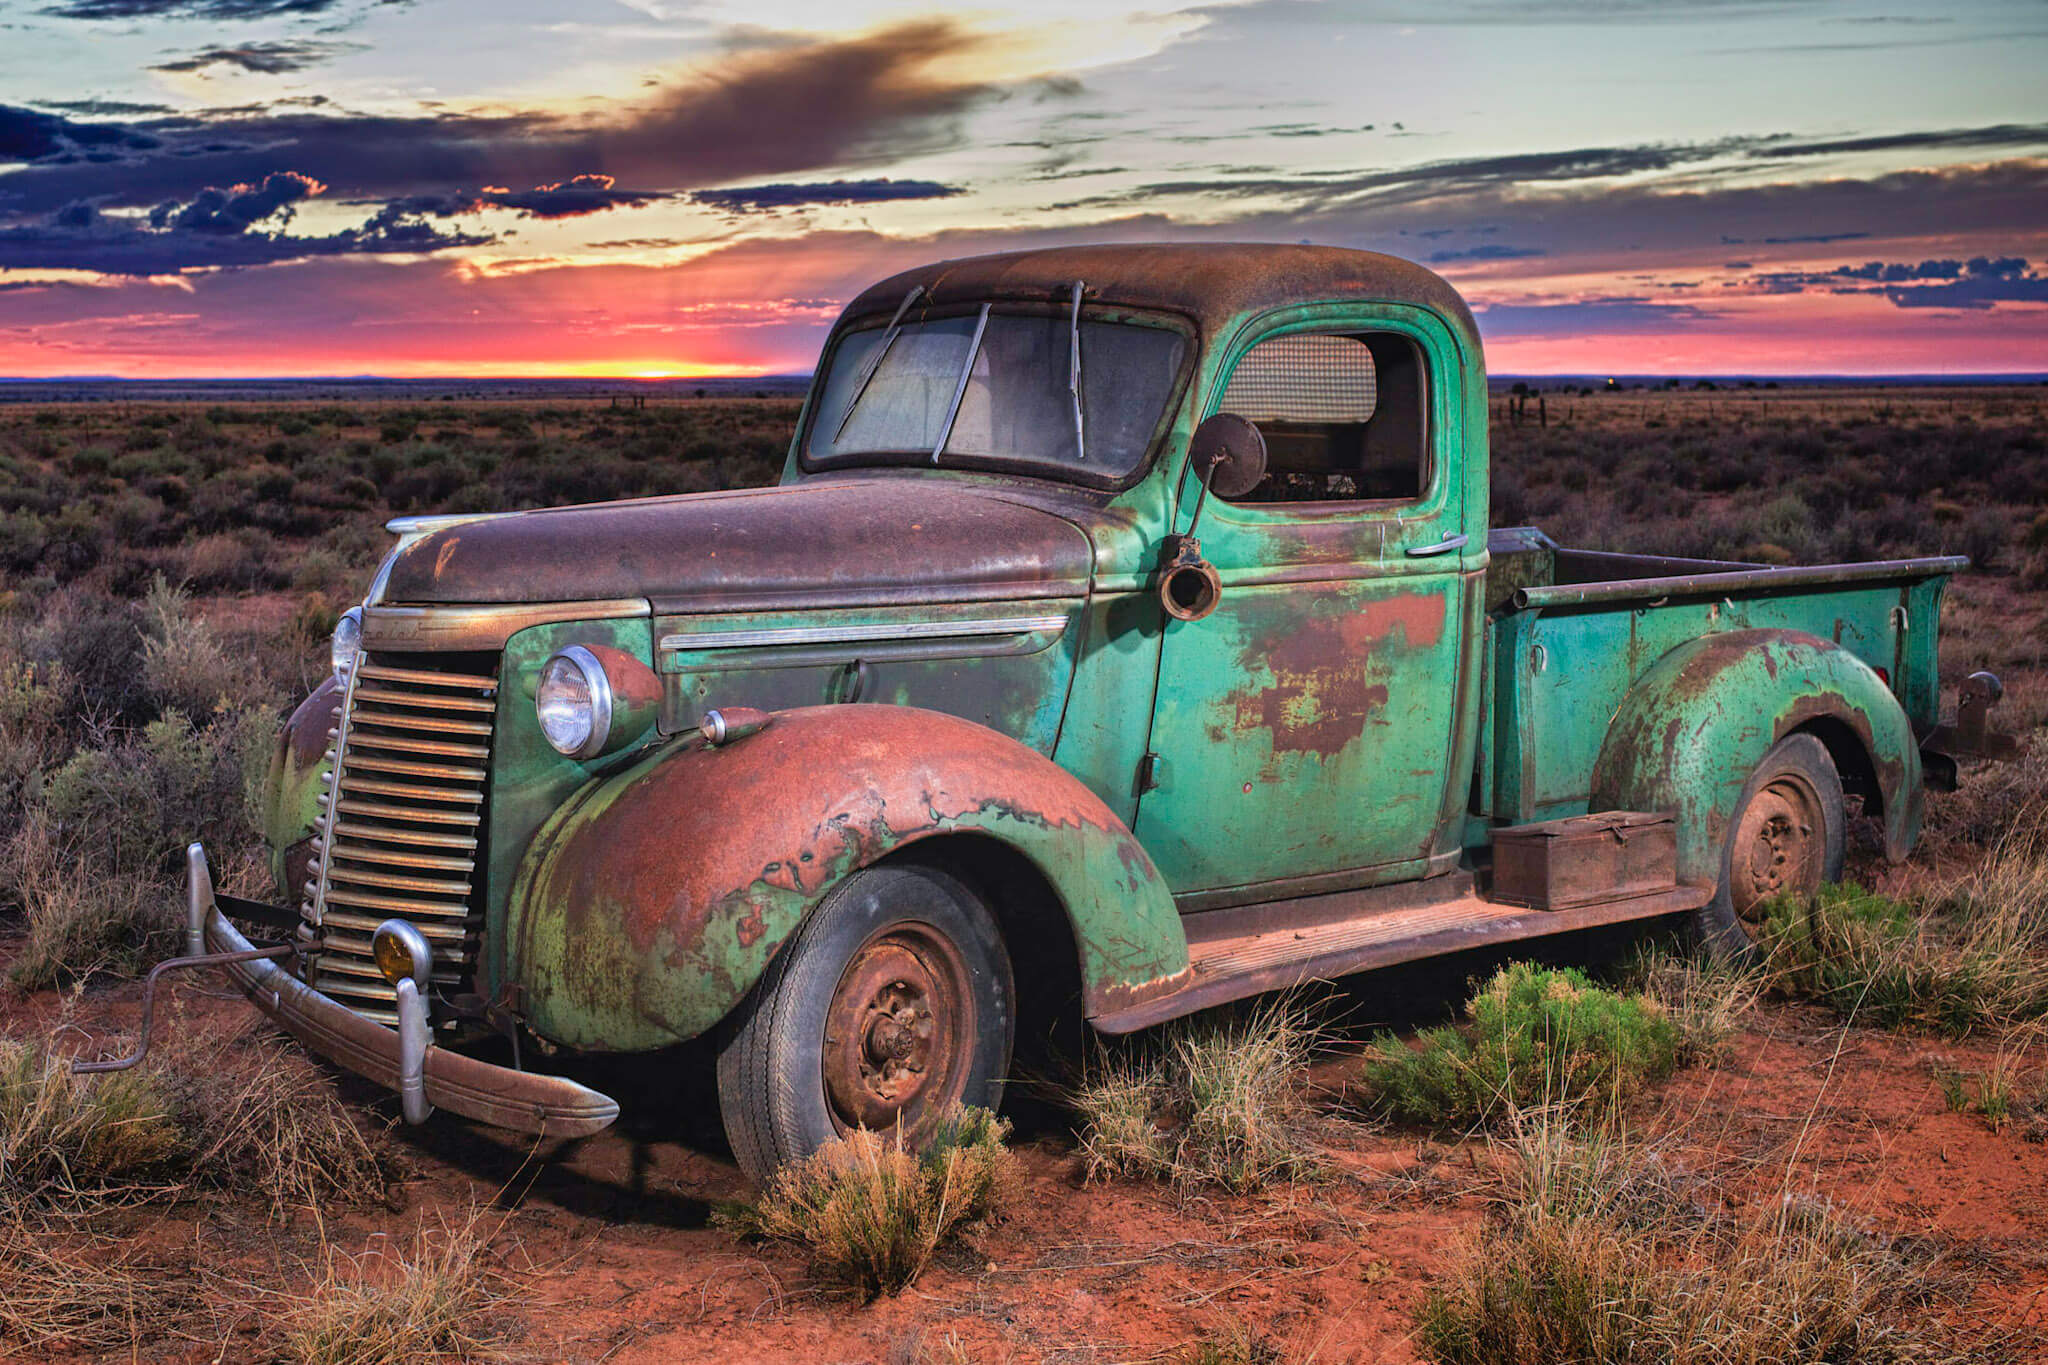 Green Truck by Guy Atchley